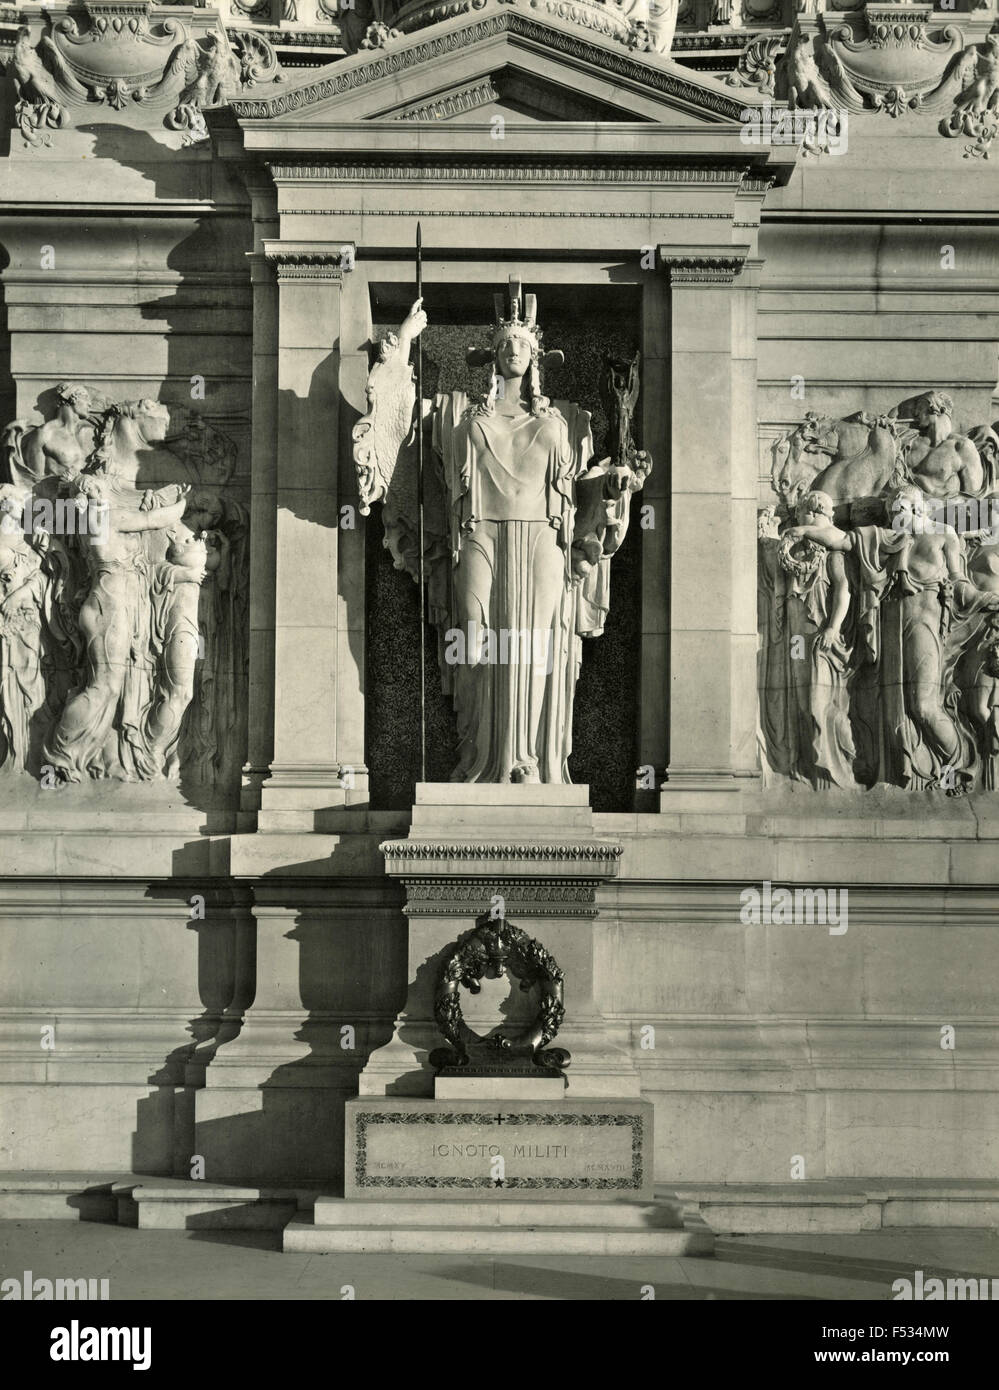 The Goddess Altar of the Fatherland Rome , Italy - Stock Image